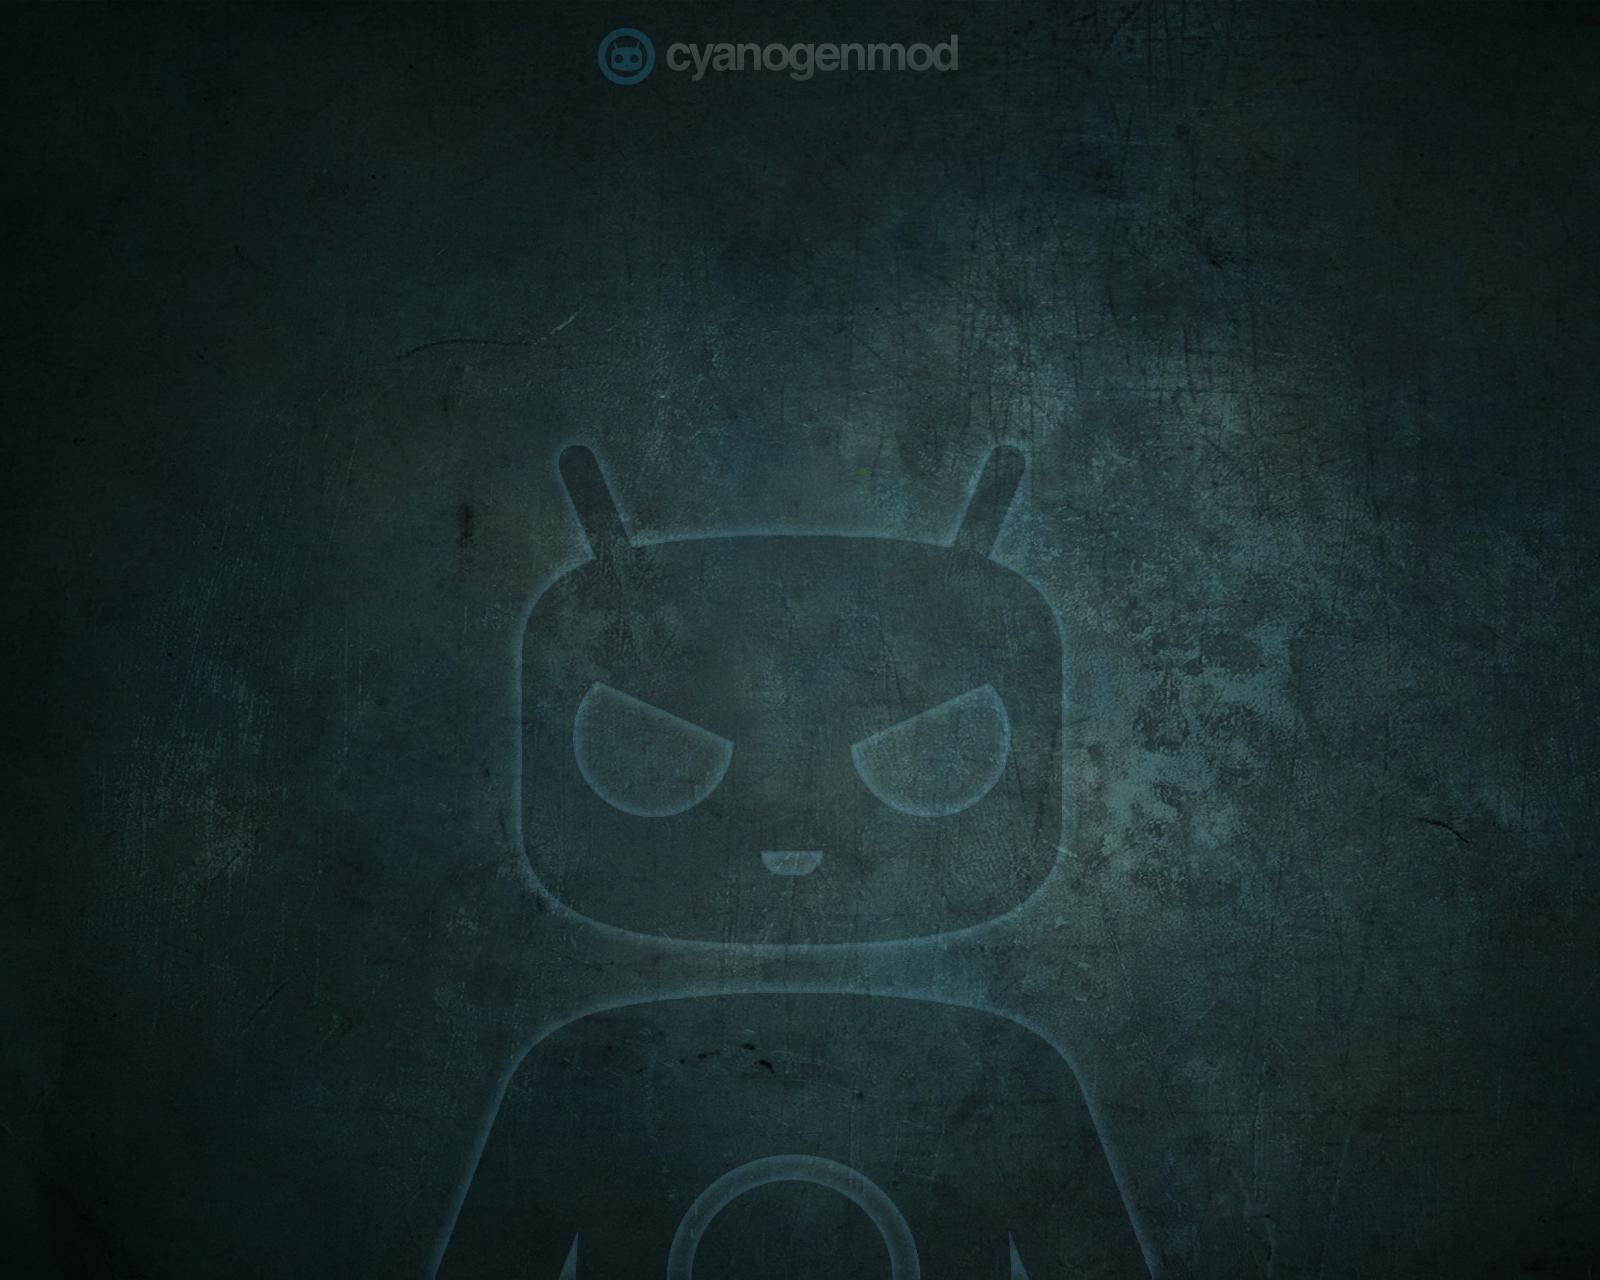 i made a dark wallpaper with cid for you cyanogenmod users